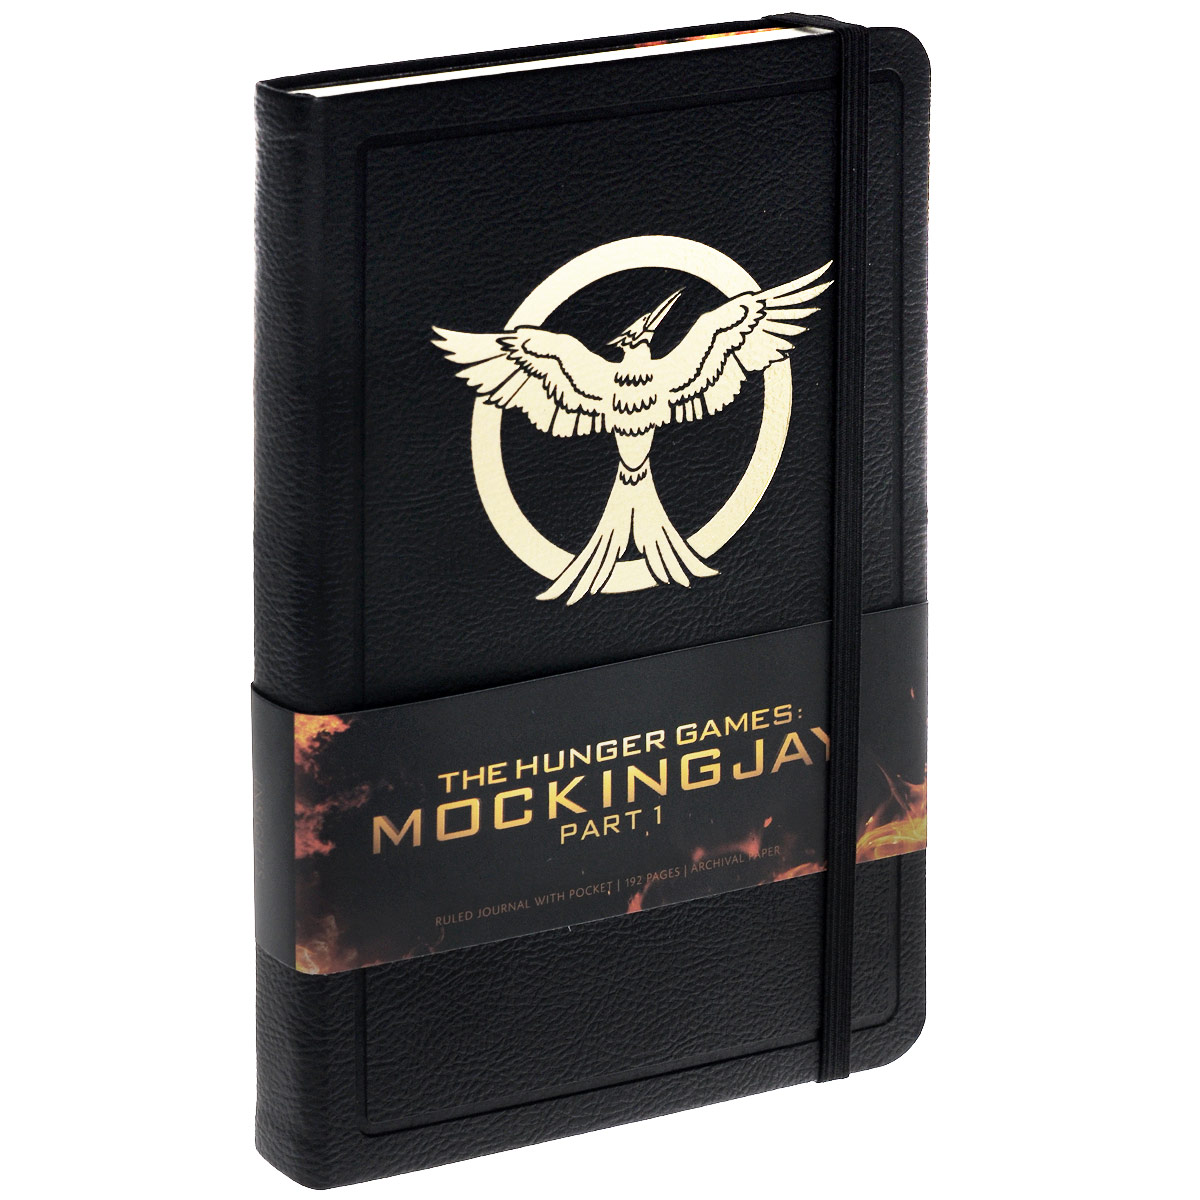 The Hunger Games: Mockingjay: Part 1: Ruled Journal with Pocket худи print bar the hunger games mockingjay